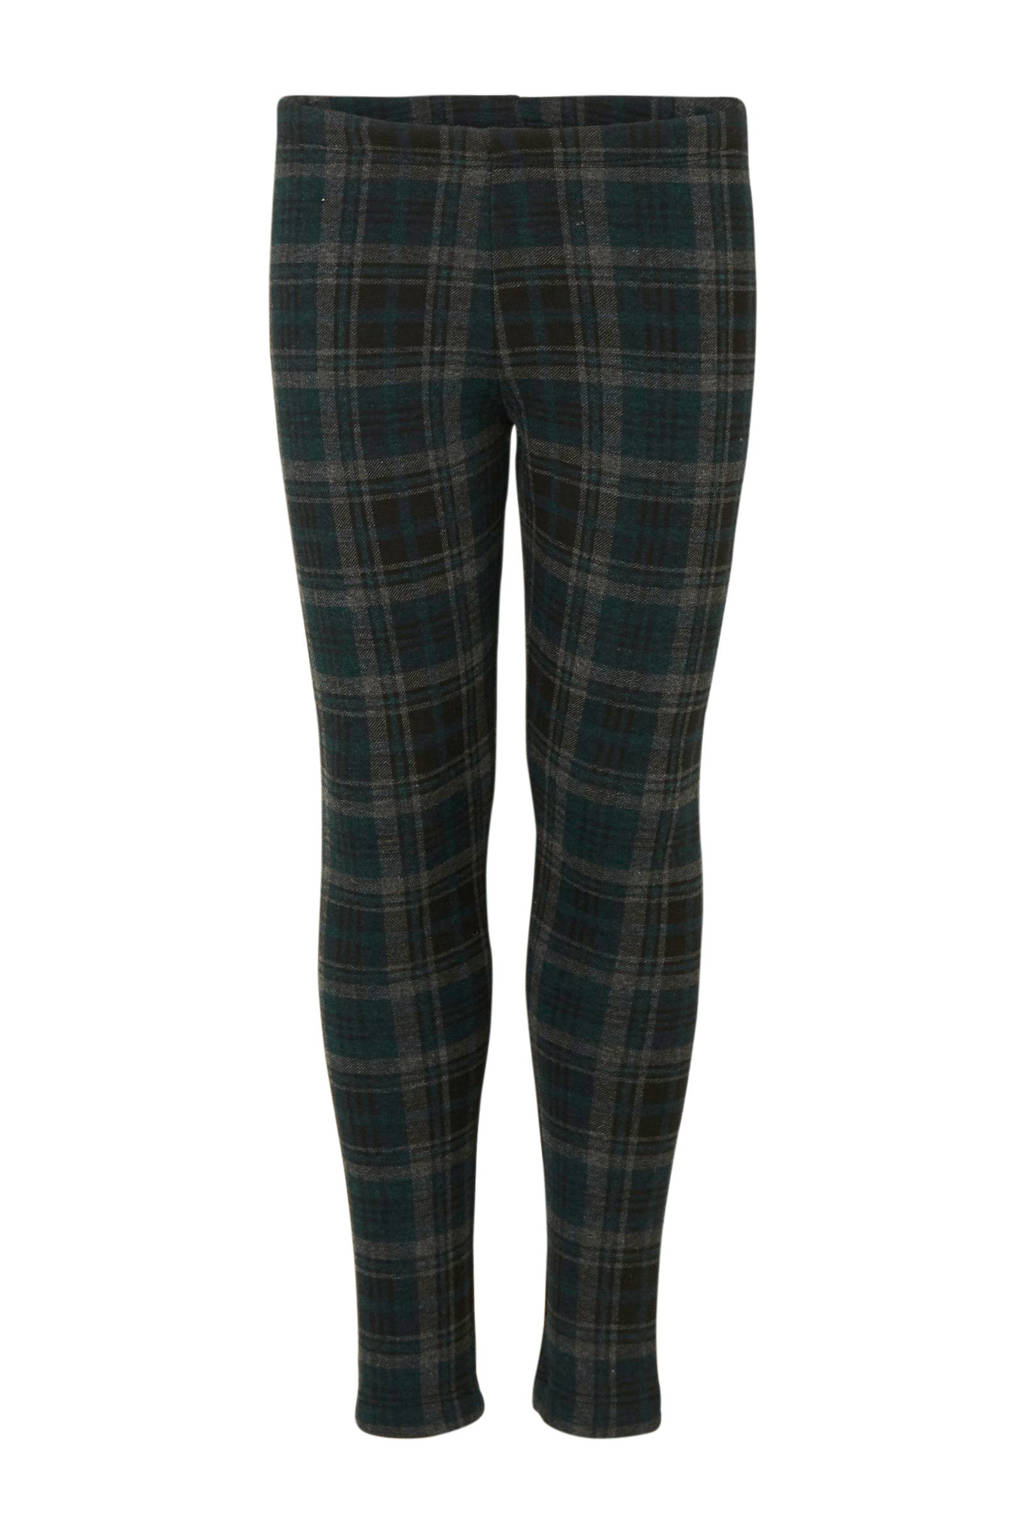 C&A Here & There geruite thermo legging groen, Groen